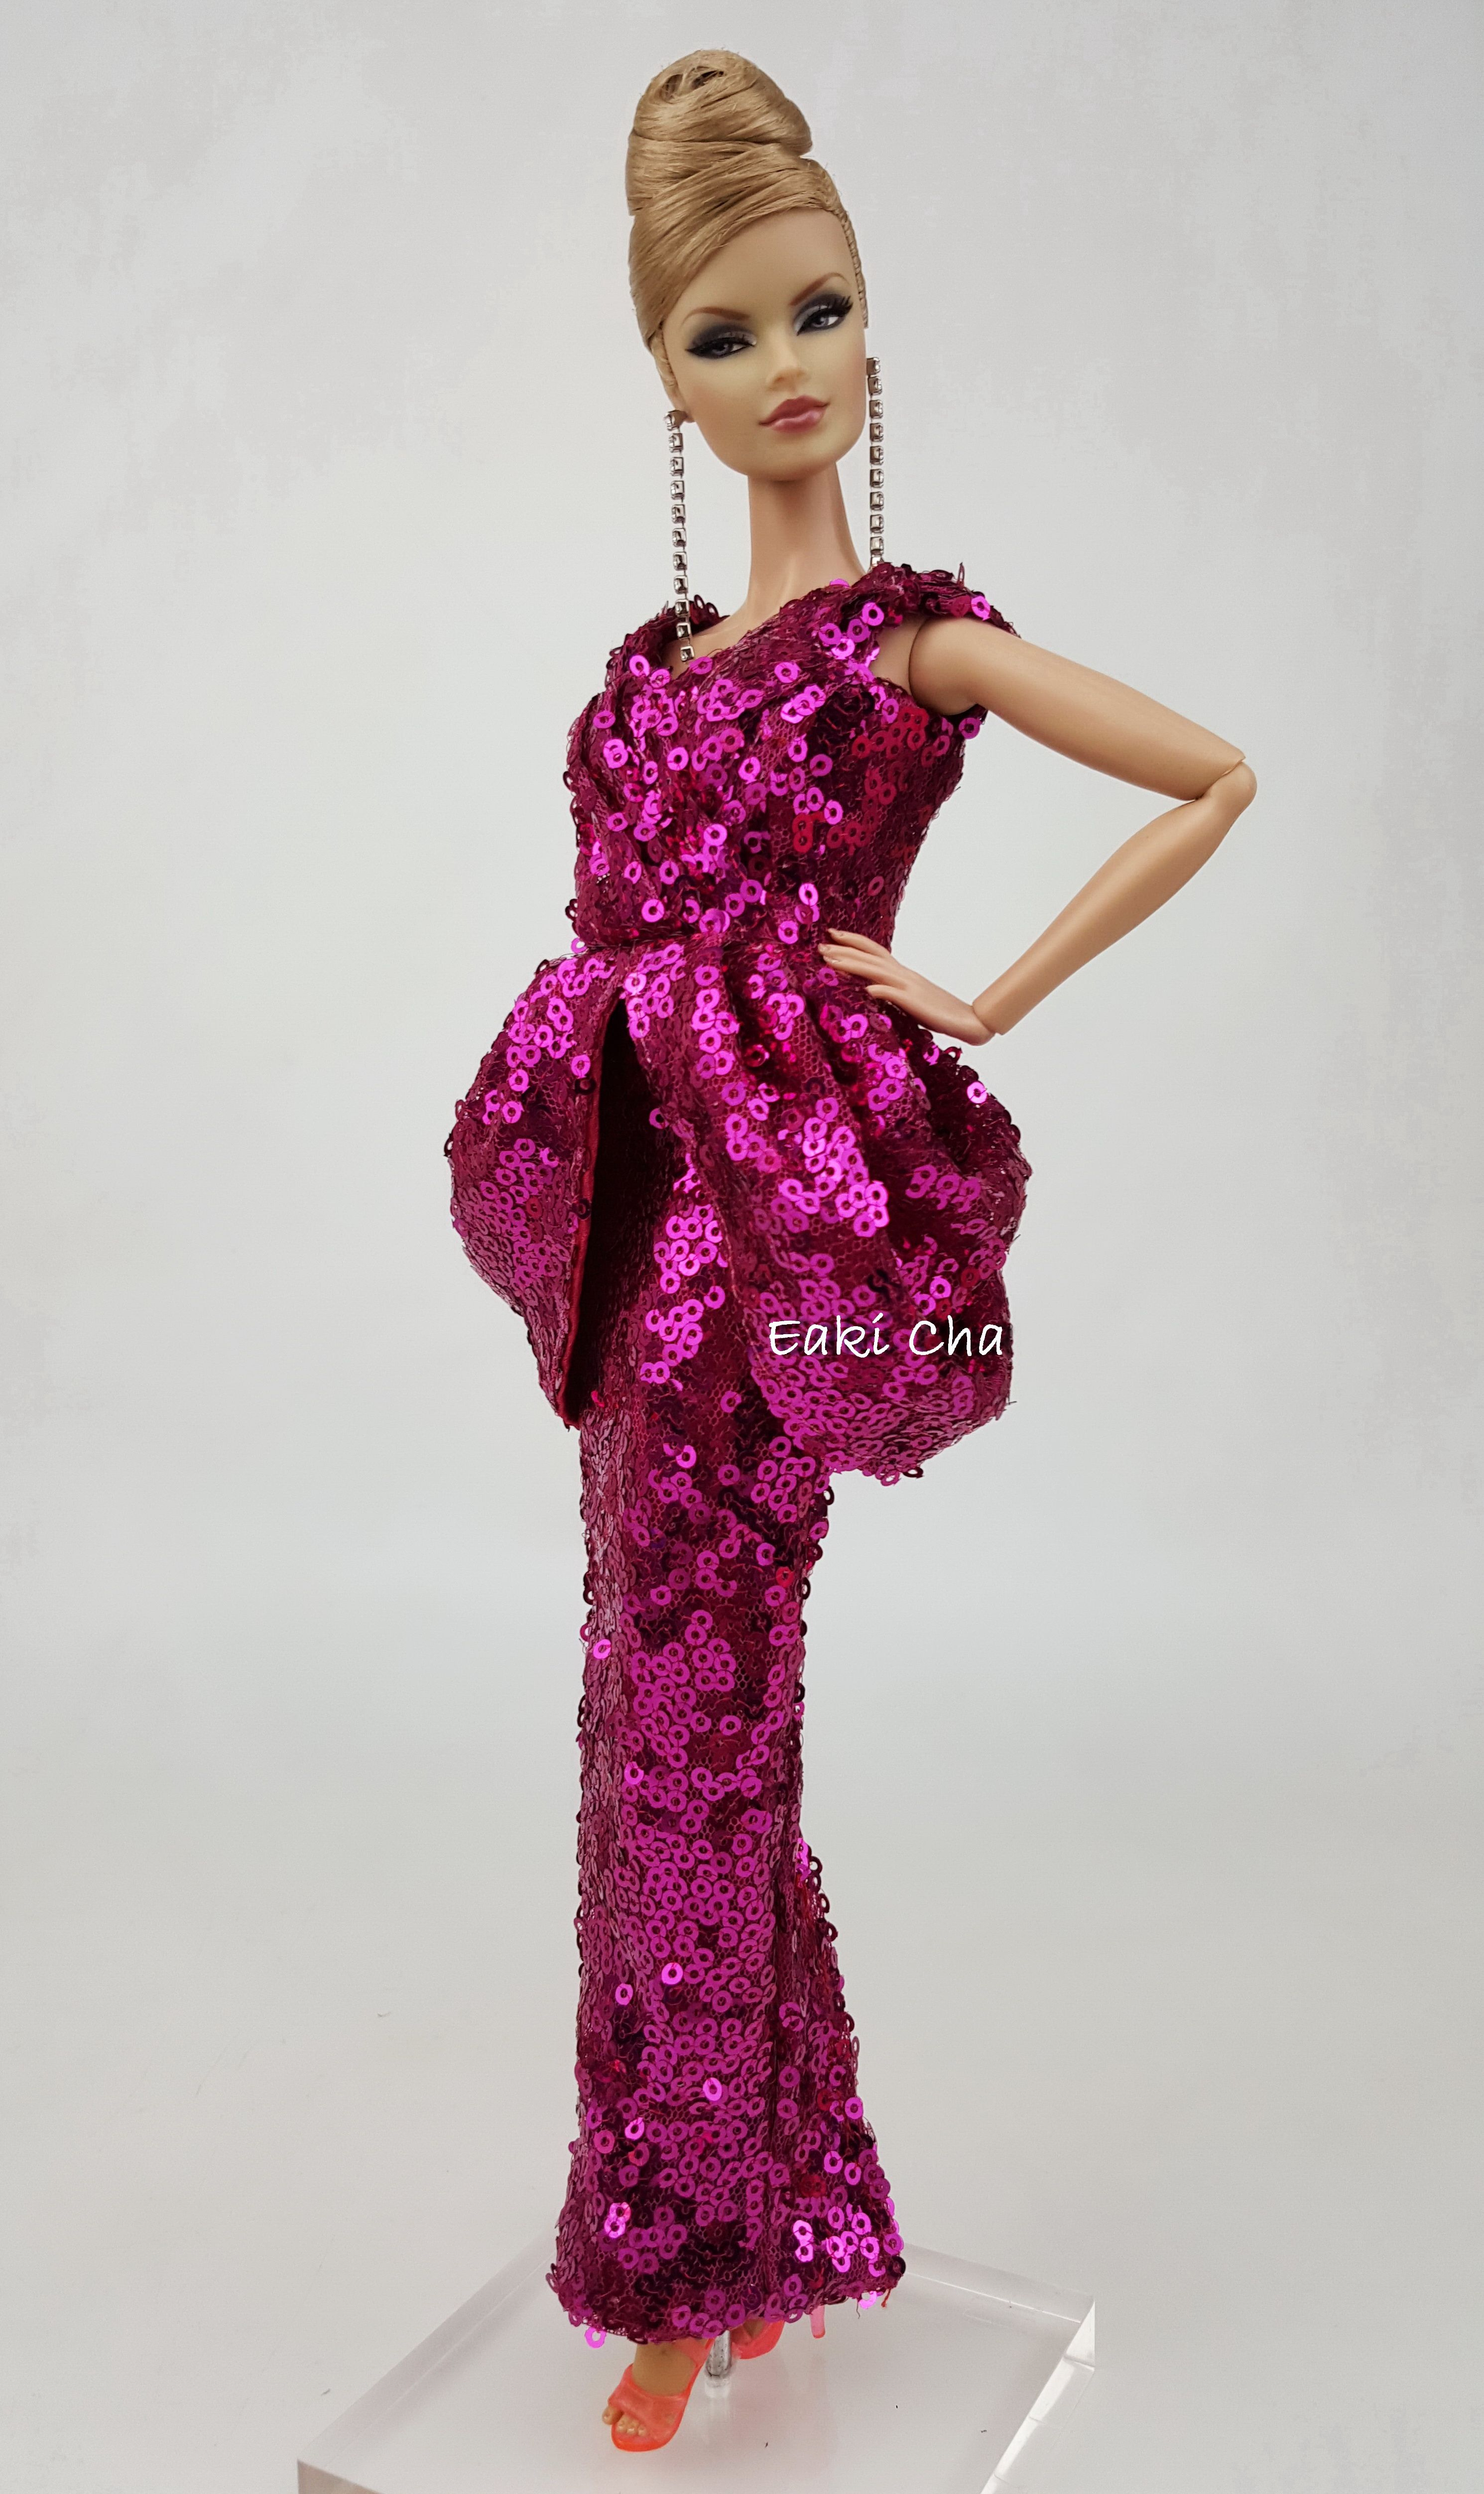 e27530130 Evening Dress Outfit Gown For Silkstone Barbie Fashion Royalty Rupaul FR2  Doll By Eaki Cha